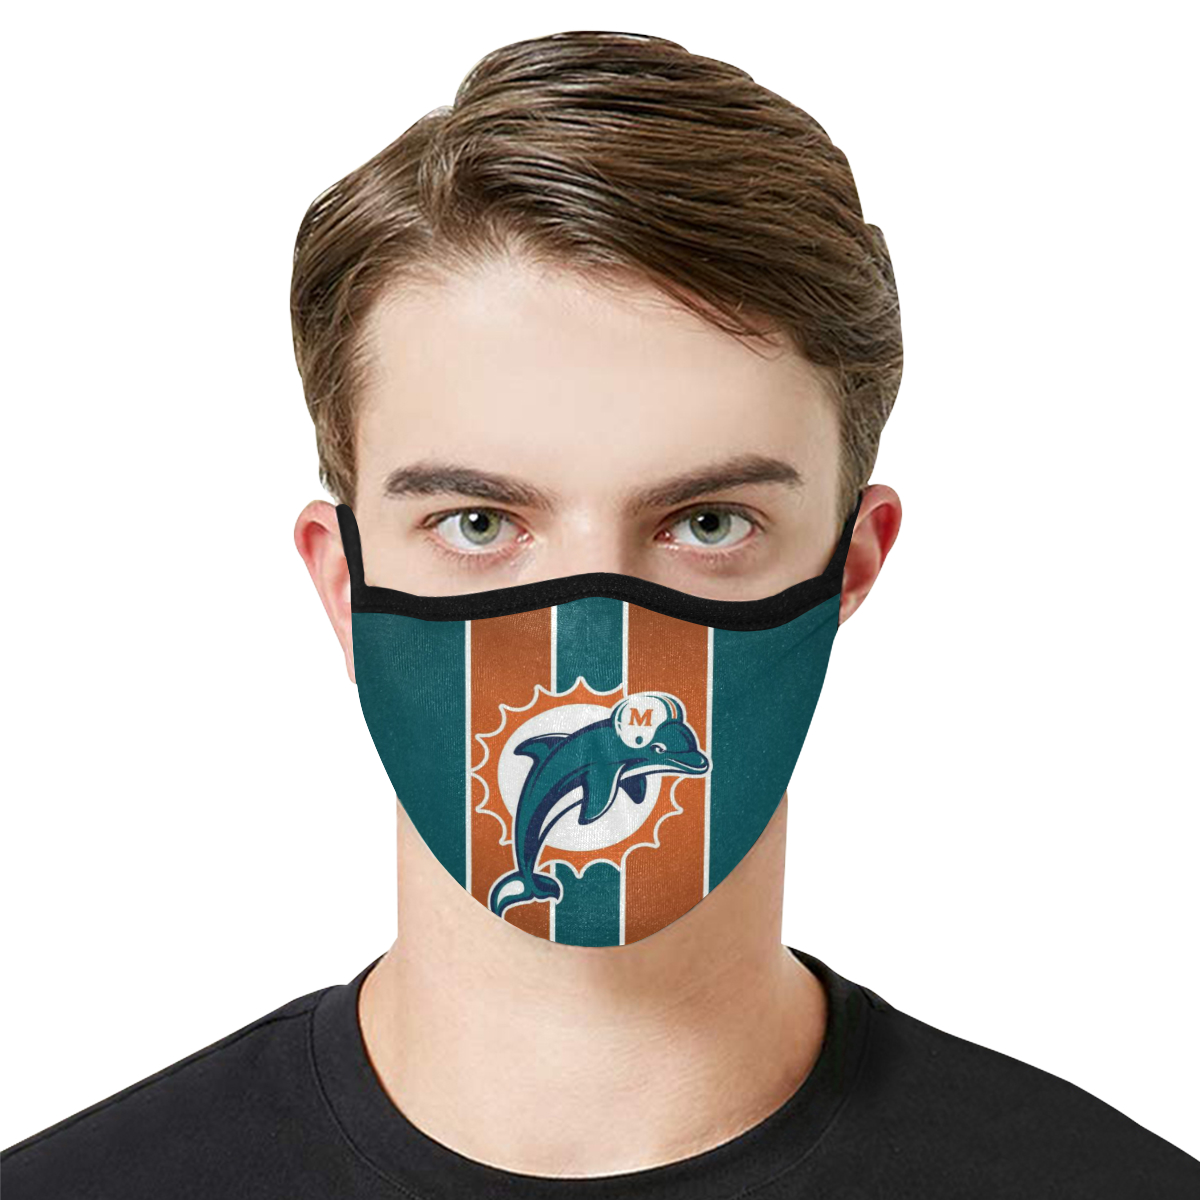 National football league miami dolphins team cotton face mask 2